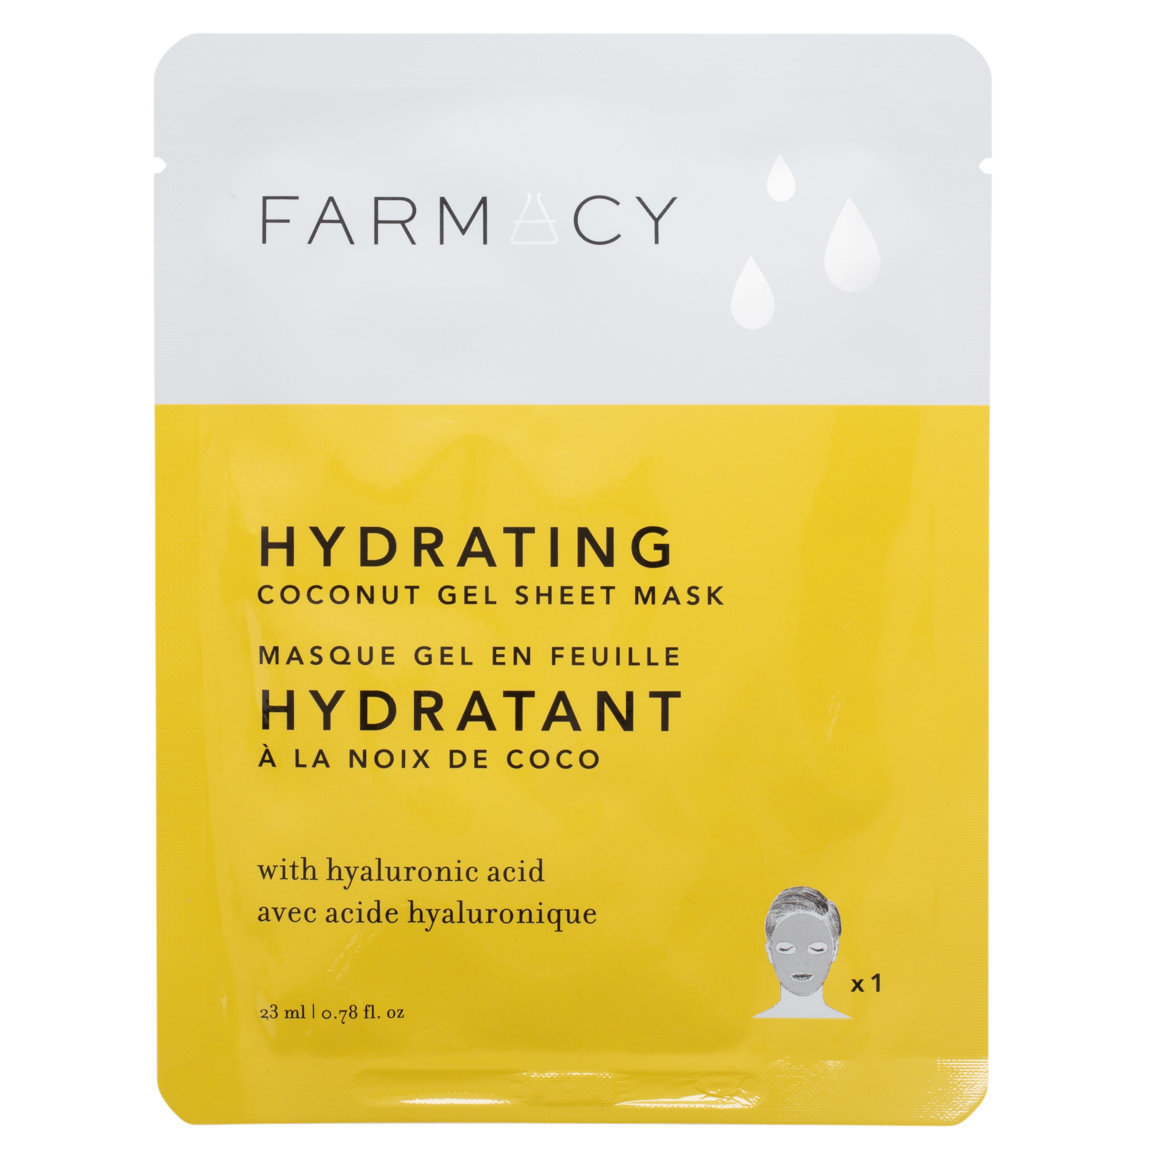 Available at Sephora, $6